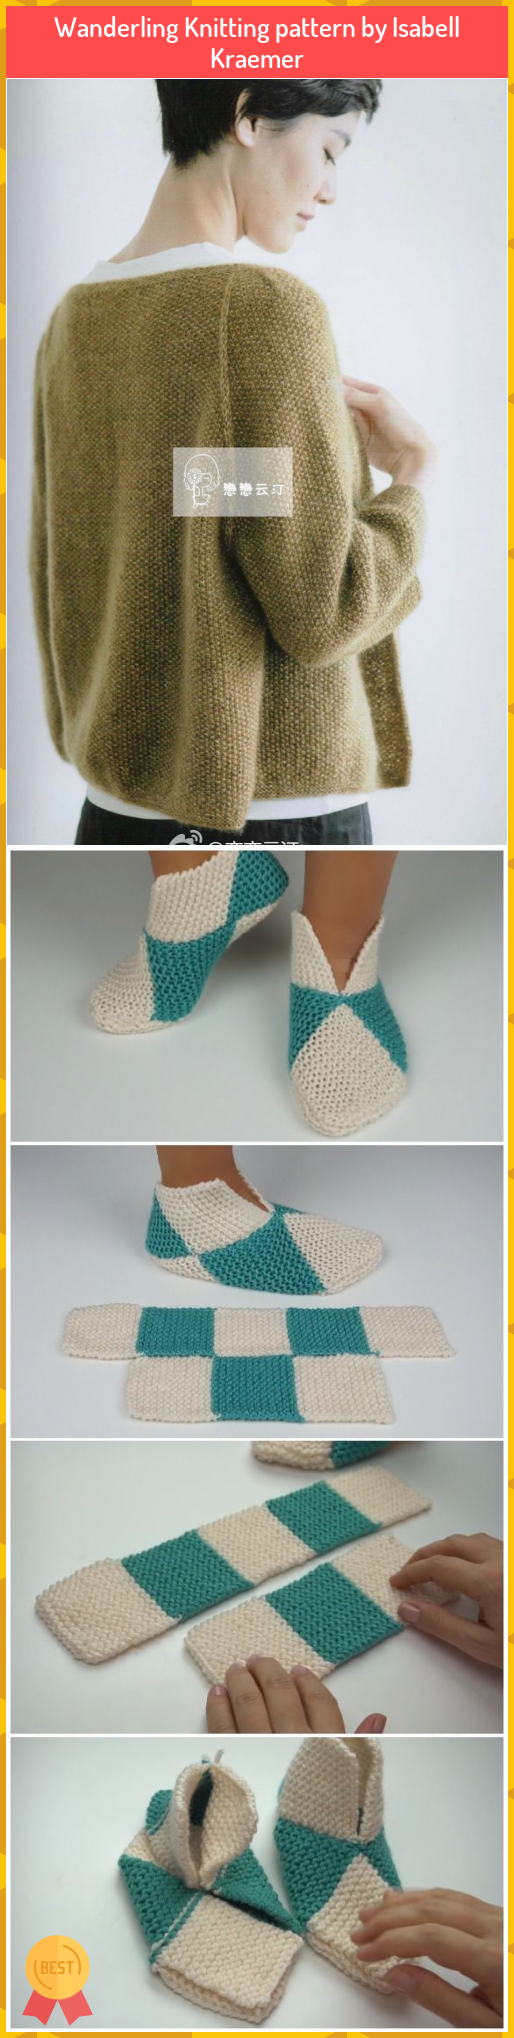 Wanderling Knitting pattern by Isabell Kraemer #Wanderling #Knitting #pattern #Isabell #Kraemer